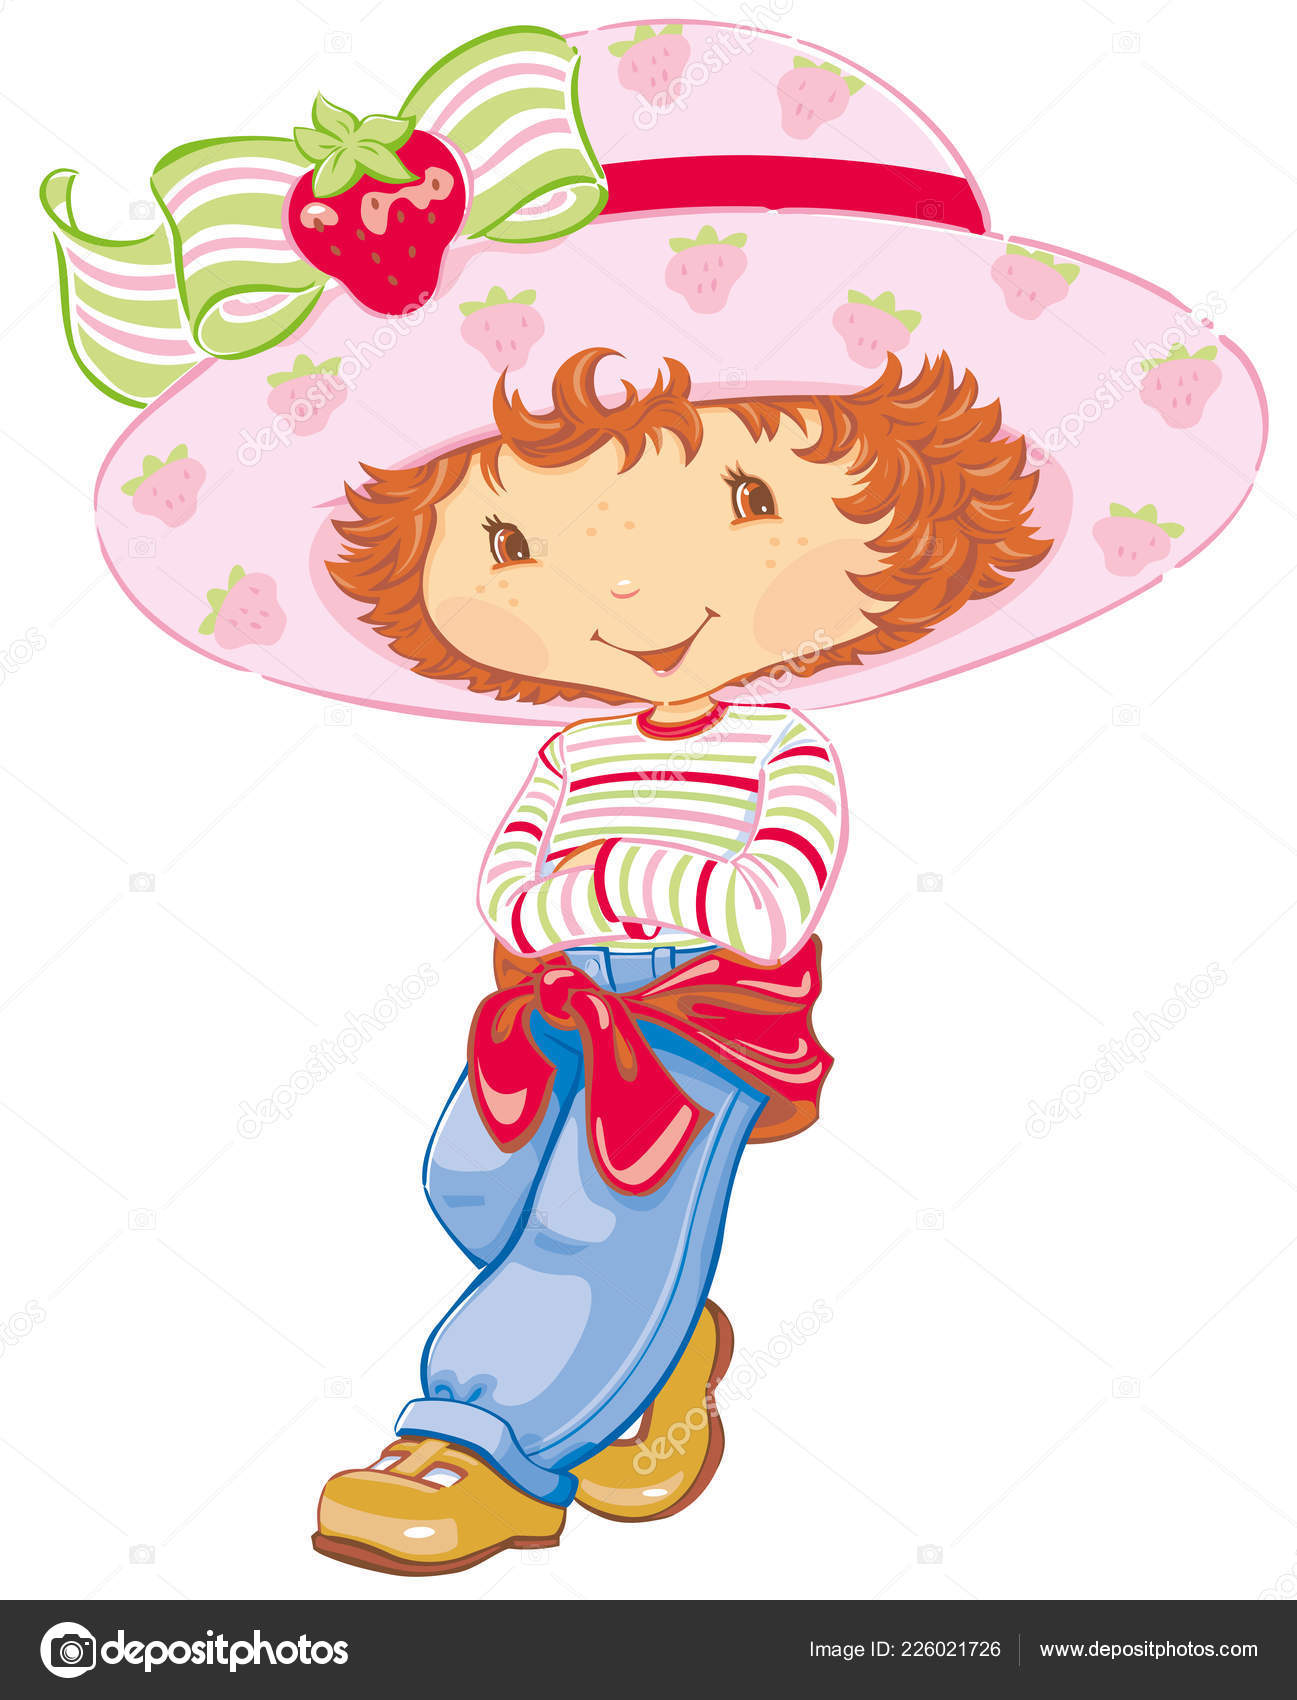 Pictures Strawberry Shortcake Doll Strawberry Shortcake Posing